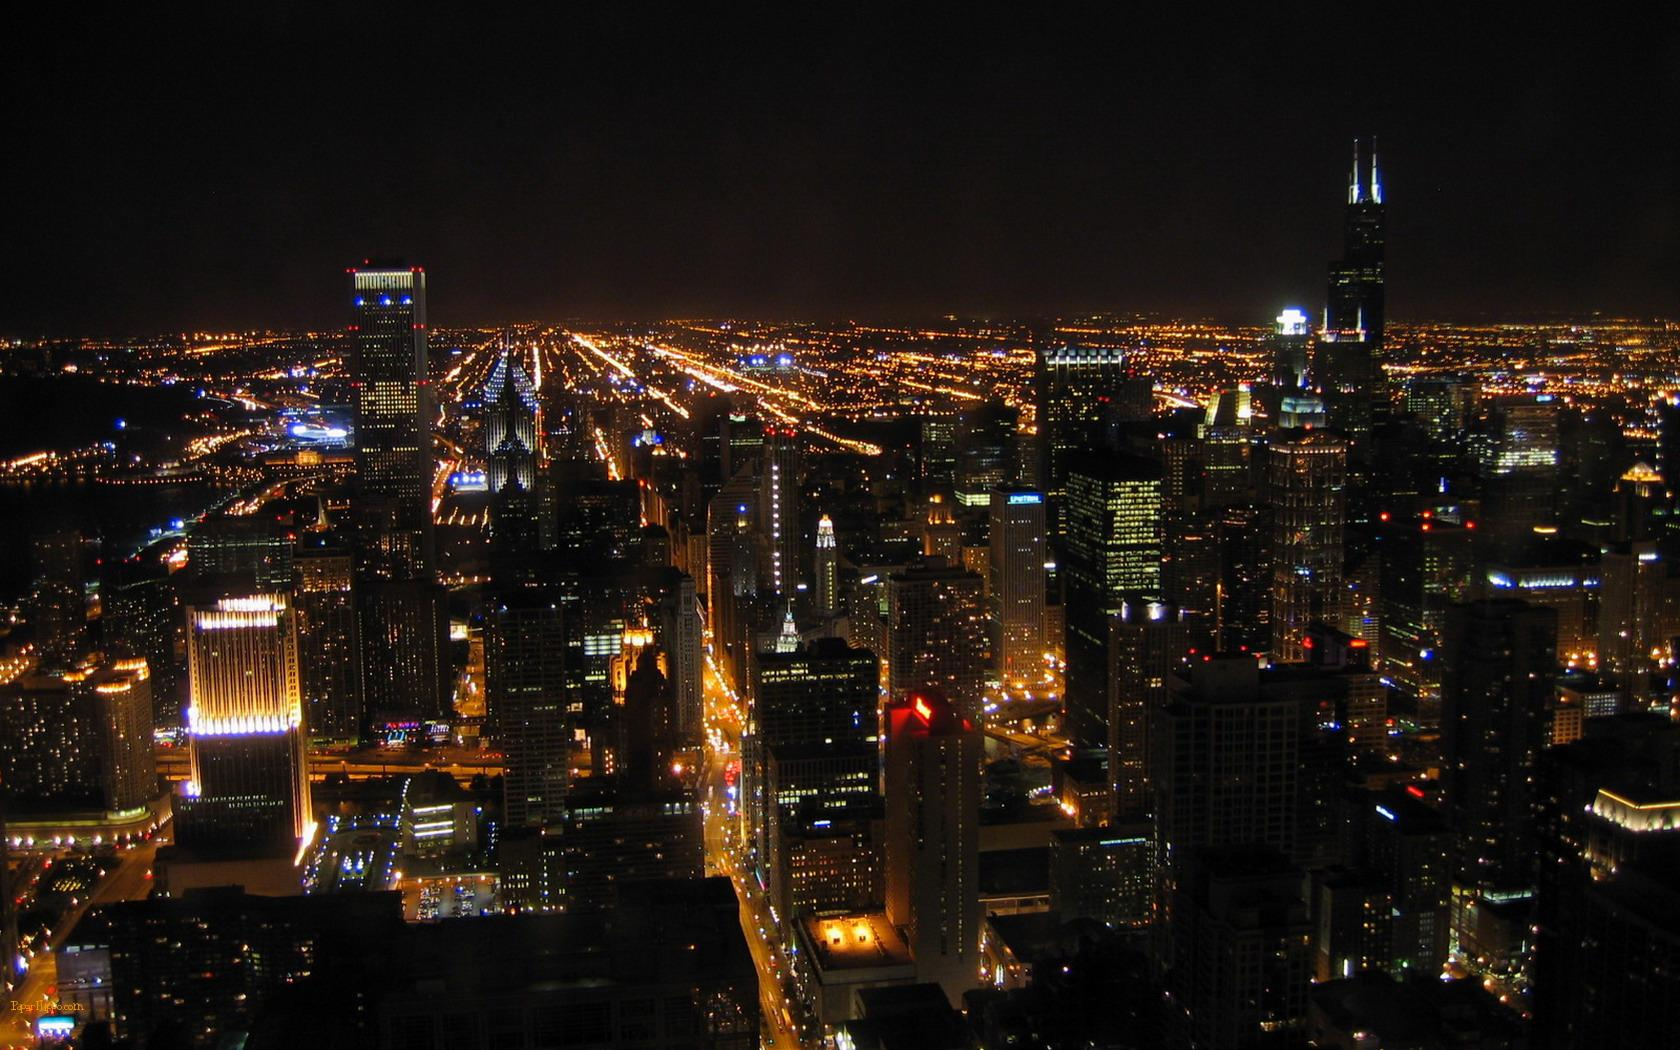 City Lights 17005 Hd Wallpapers in Movies   Imagescicom 1680x1050